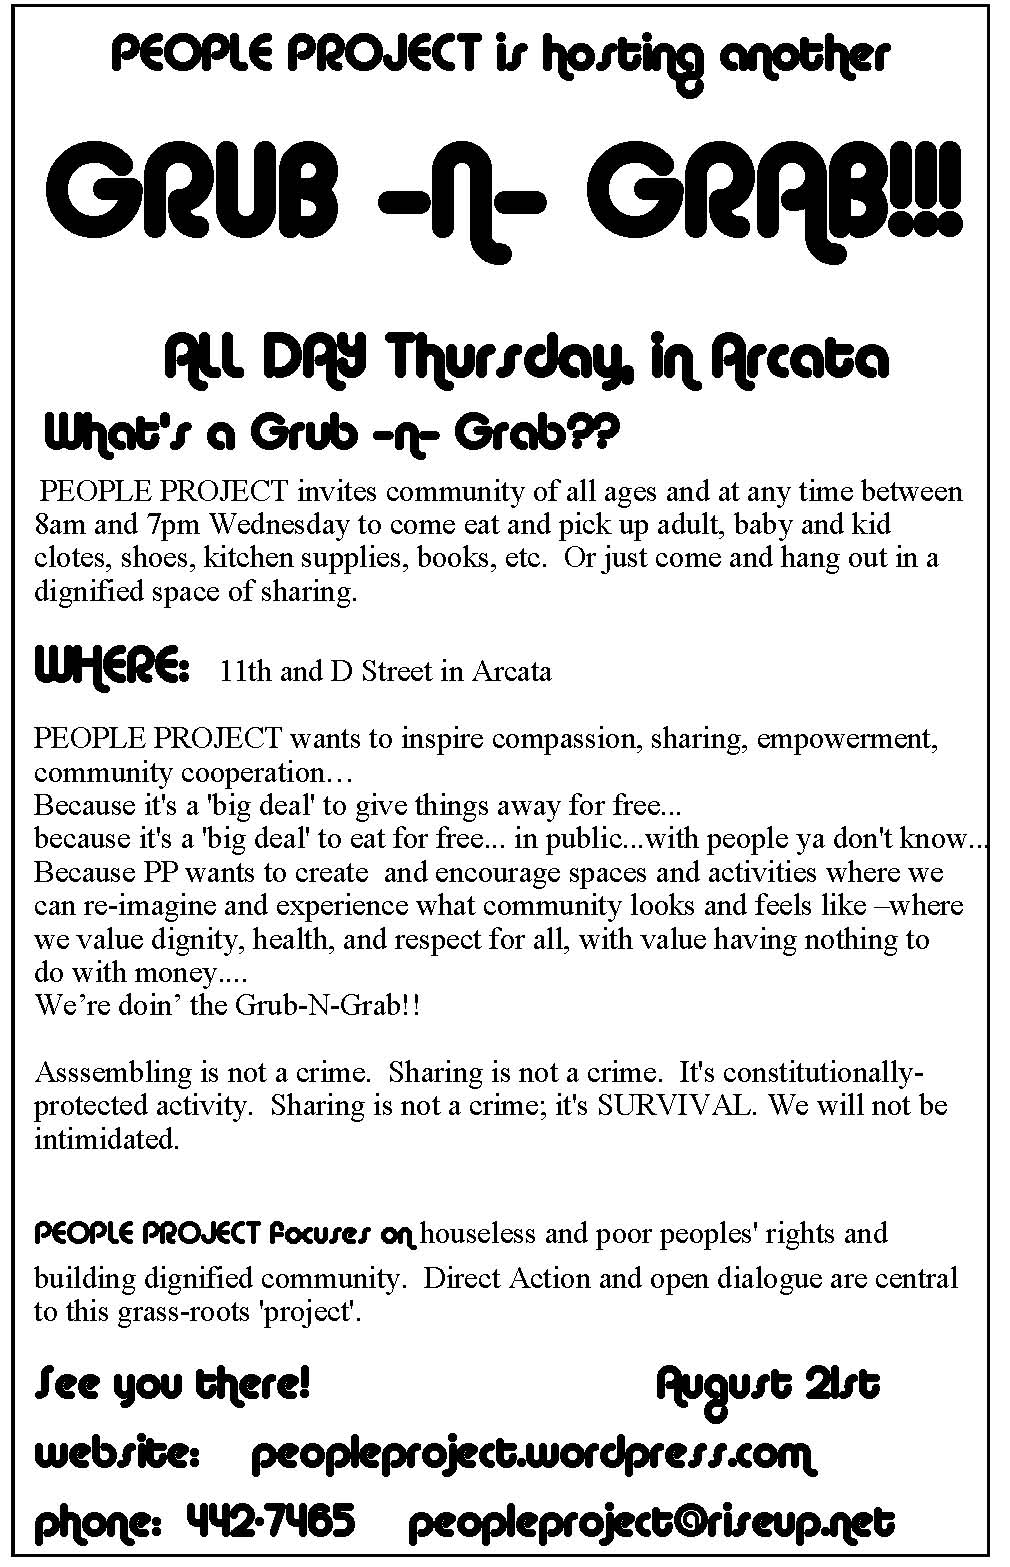 GRUB-N-GRAB Thursday August 21 ARCATA | PEOPLE PROJECT